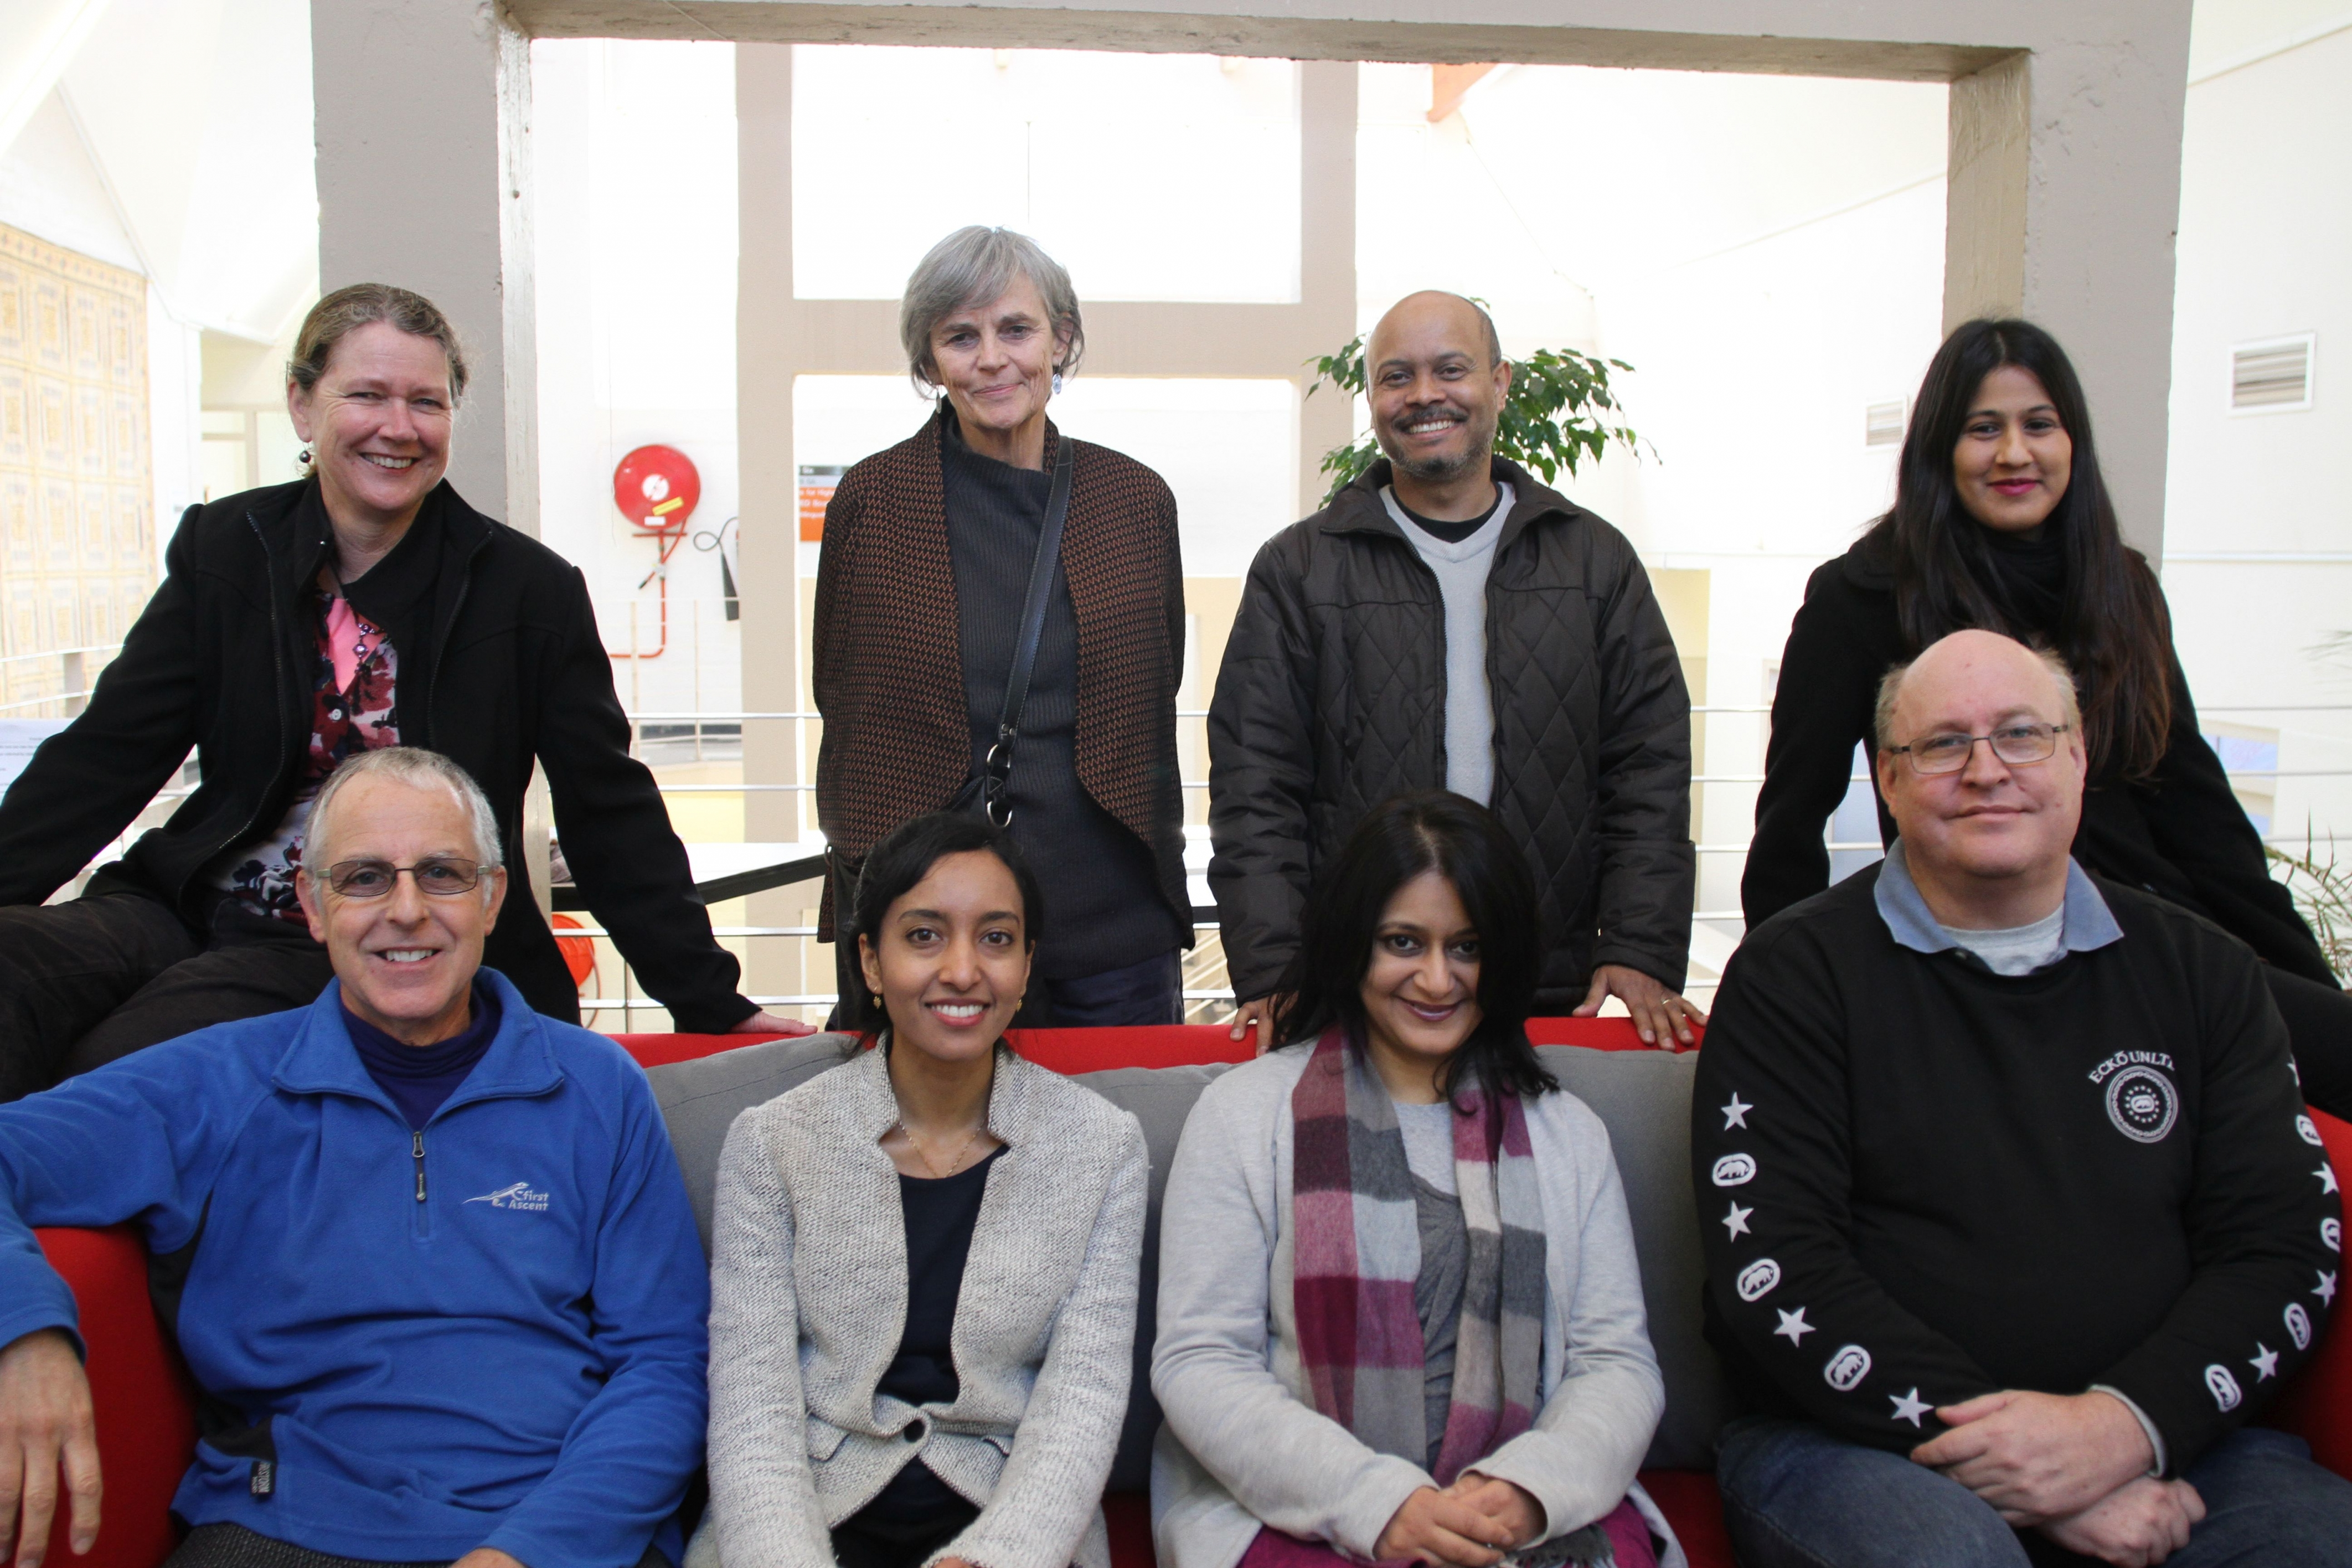 Back (left to right): Janet Small, Lucia Thesen, Gideon Nomdo, Tasneem Jaffer. Front (left to right): Jeff Jawitz, Aditi Hunma, Sukaina Walji, Andrew Deacon